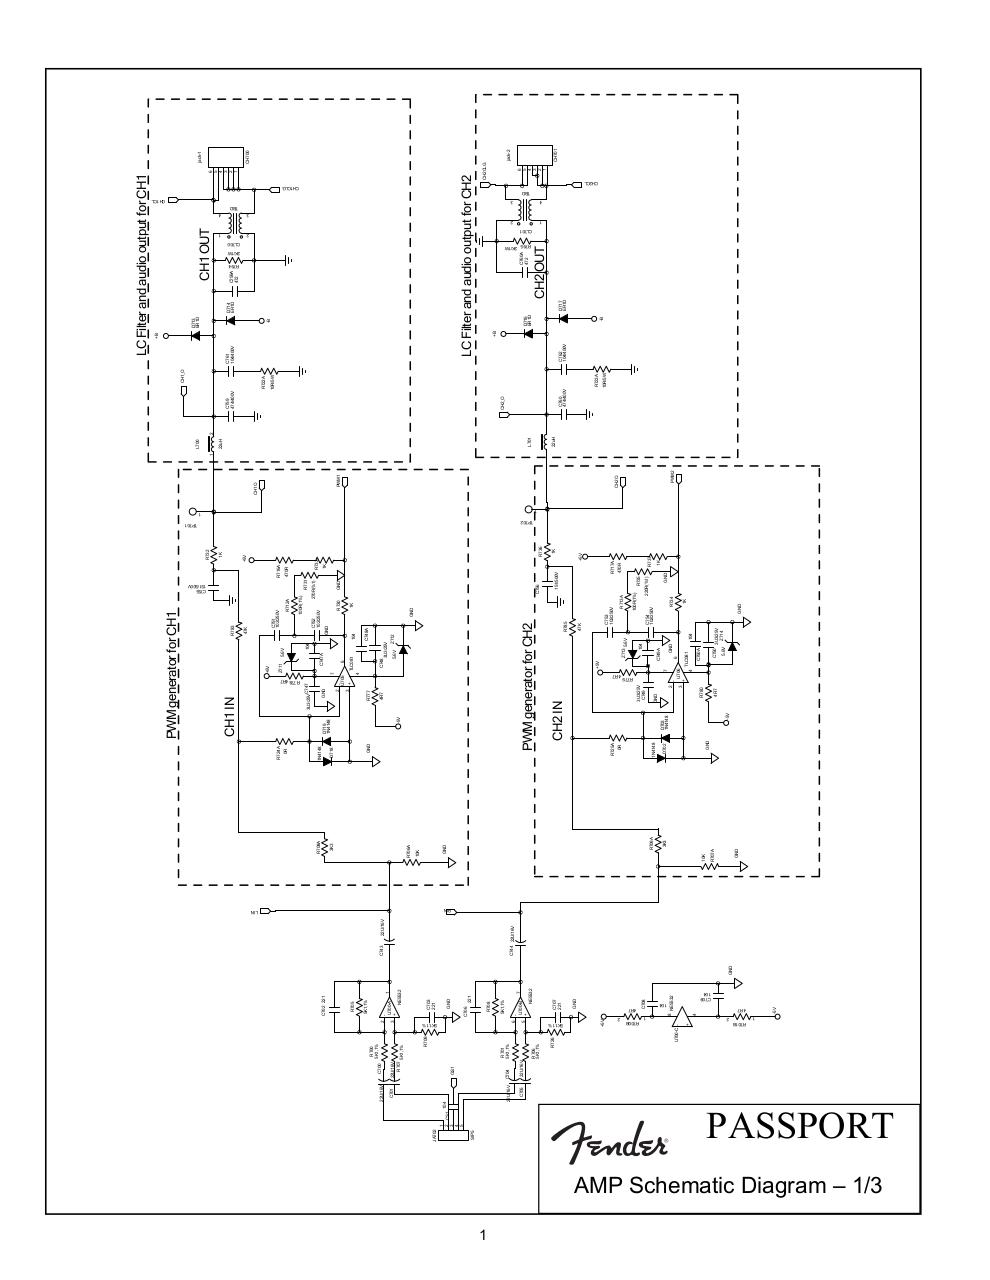 Passport 300 Pro Service Diagrams.pdf - page 2/29